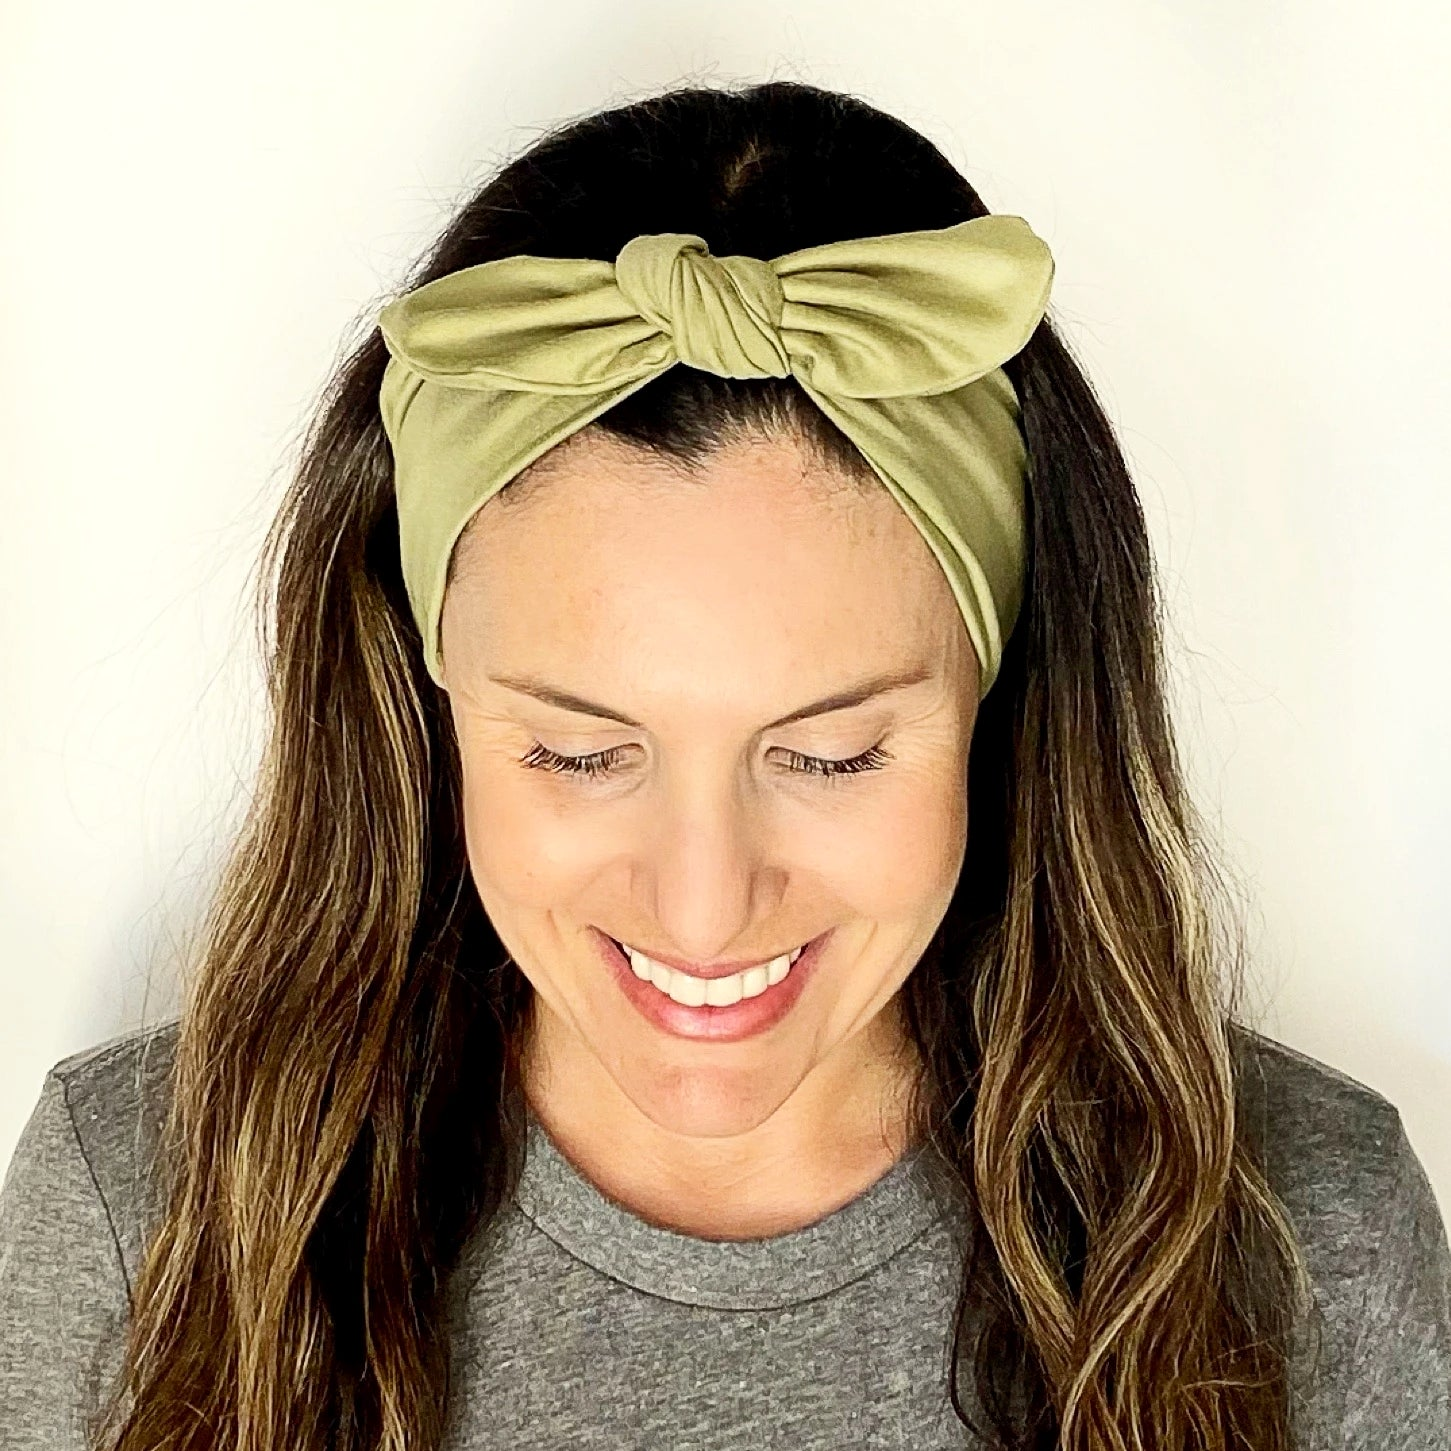 Dusty Green Tie Headband